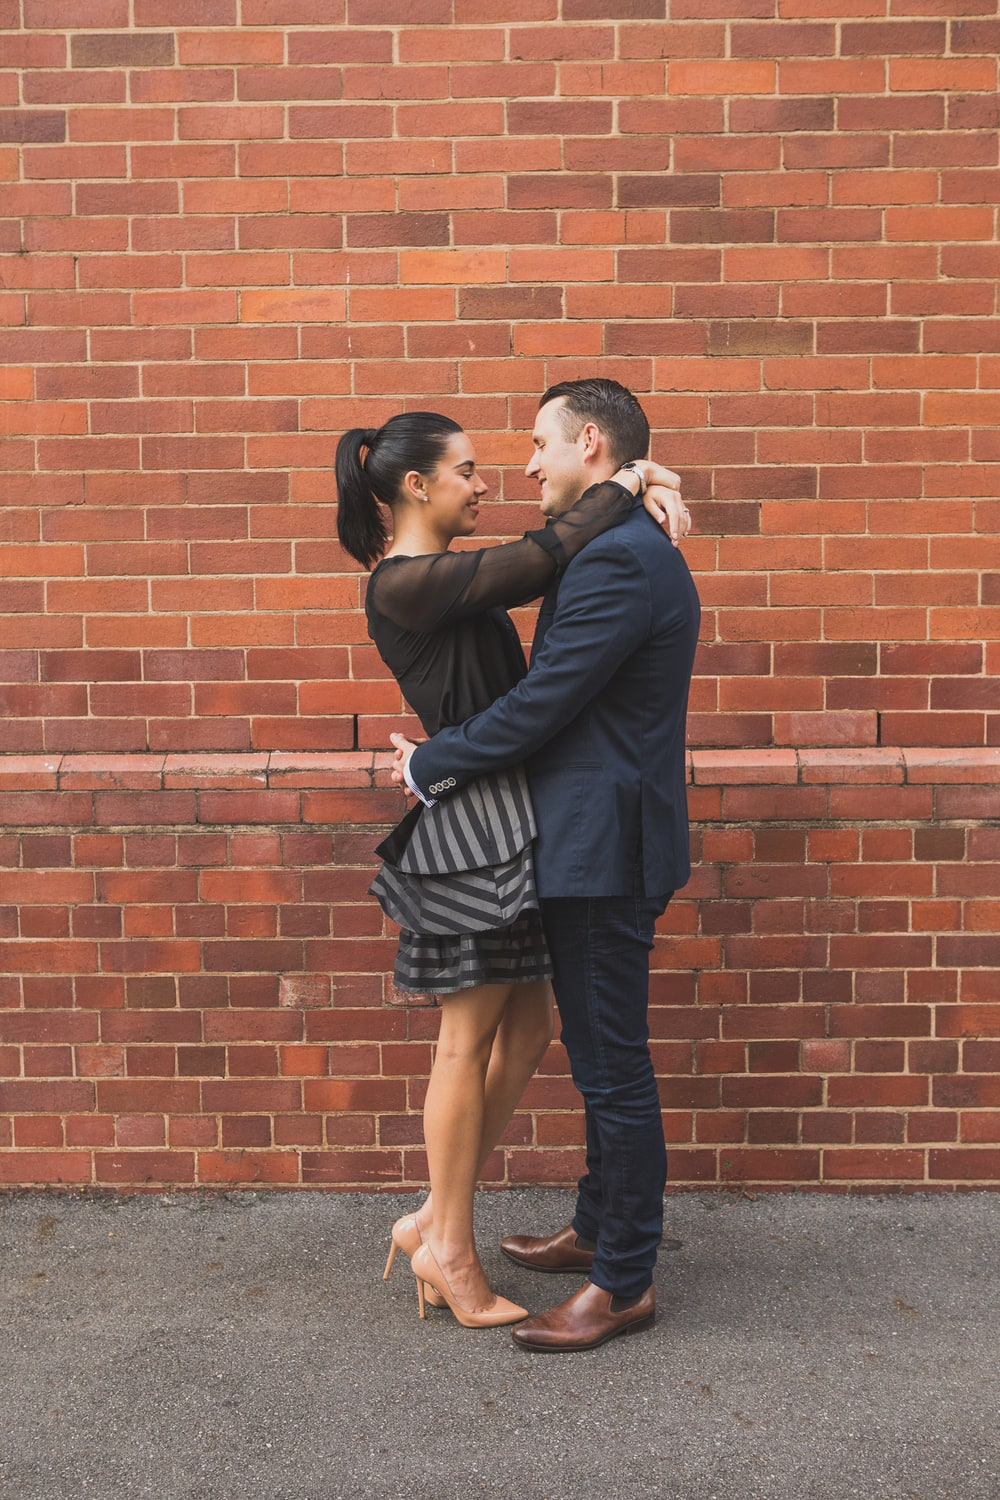 Tenerrife Engagement Photography Brisbane